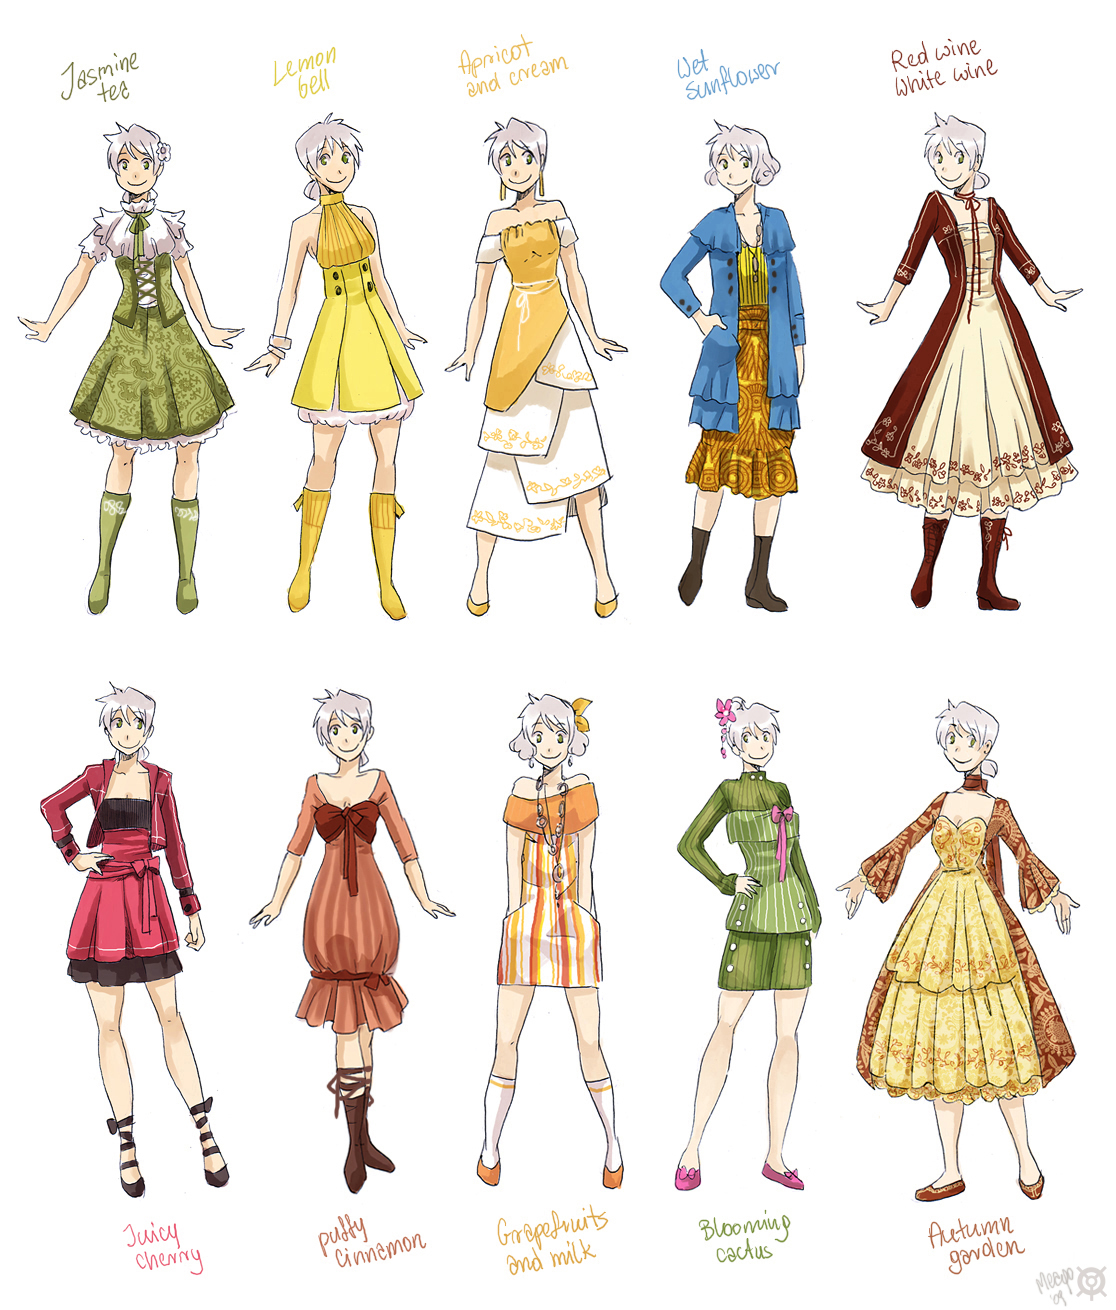 clothes 2 by meago watch designs interfaces fashion fashion design